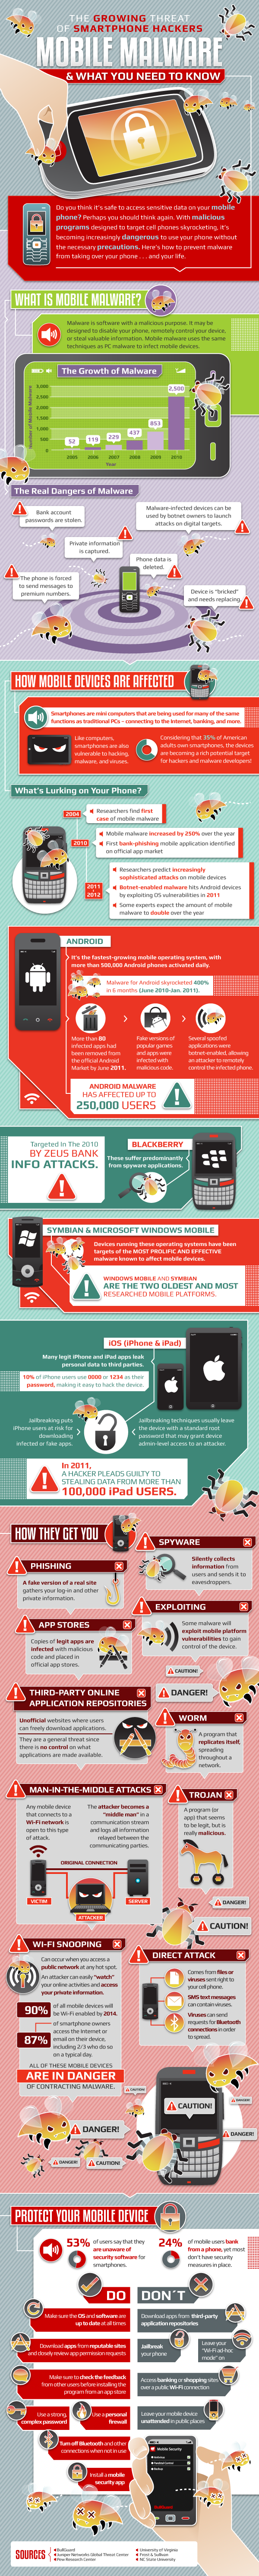 State of Mobile Malware8 11 2 Smartphone Malware on the rise, what you should know   infographic